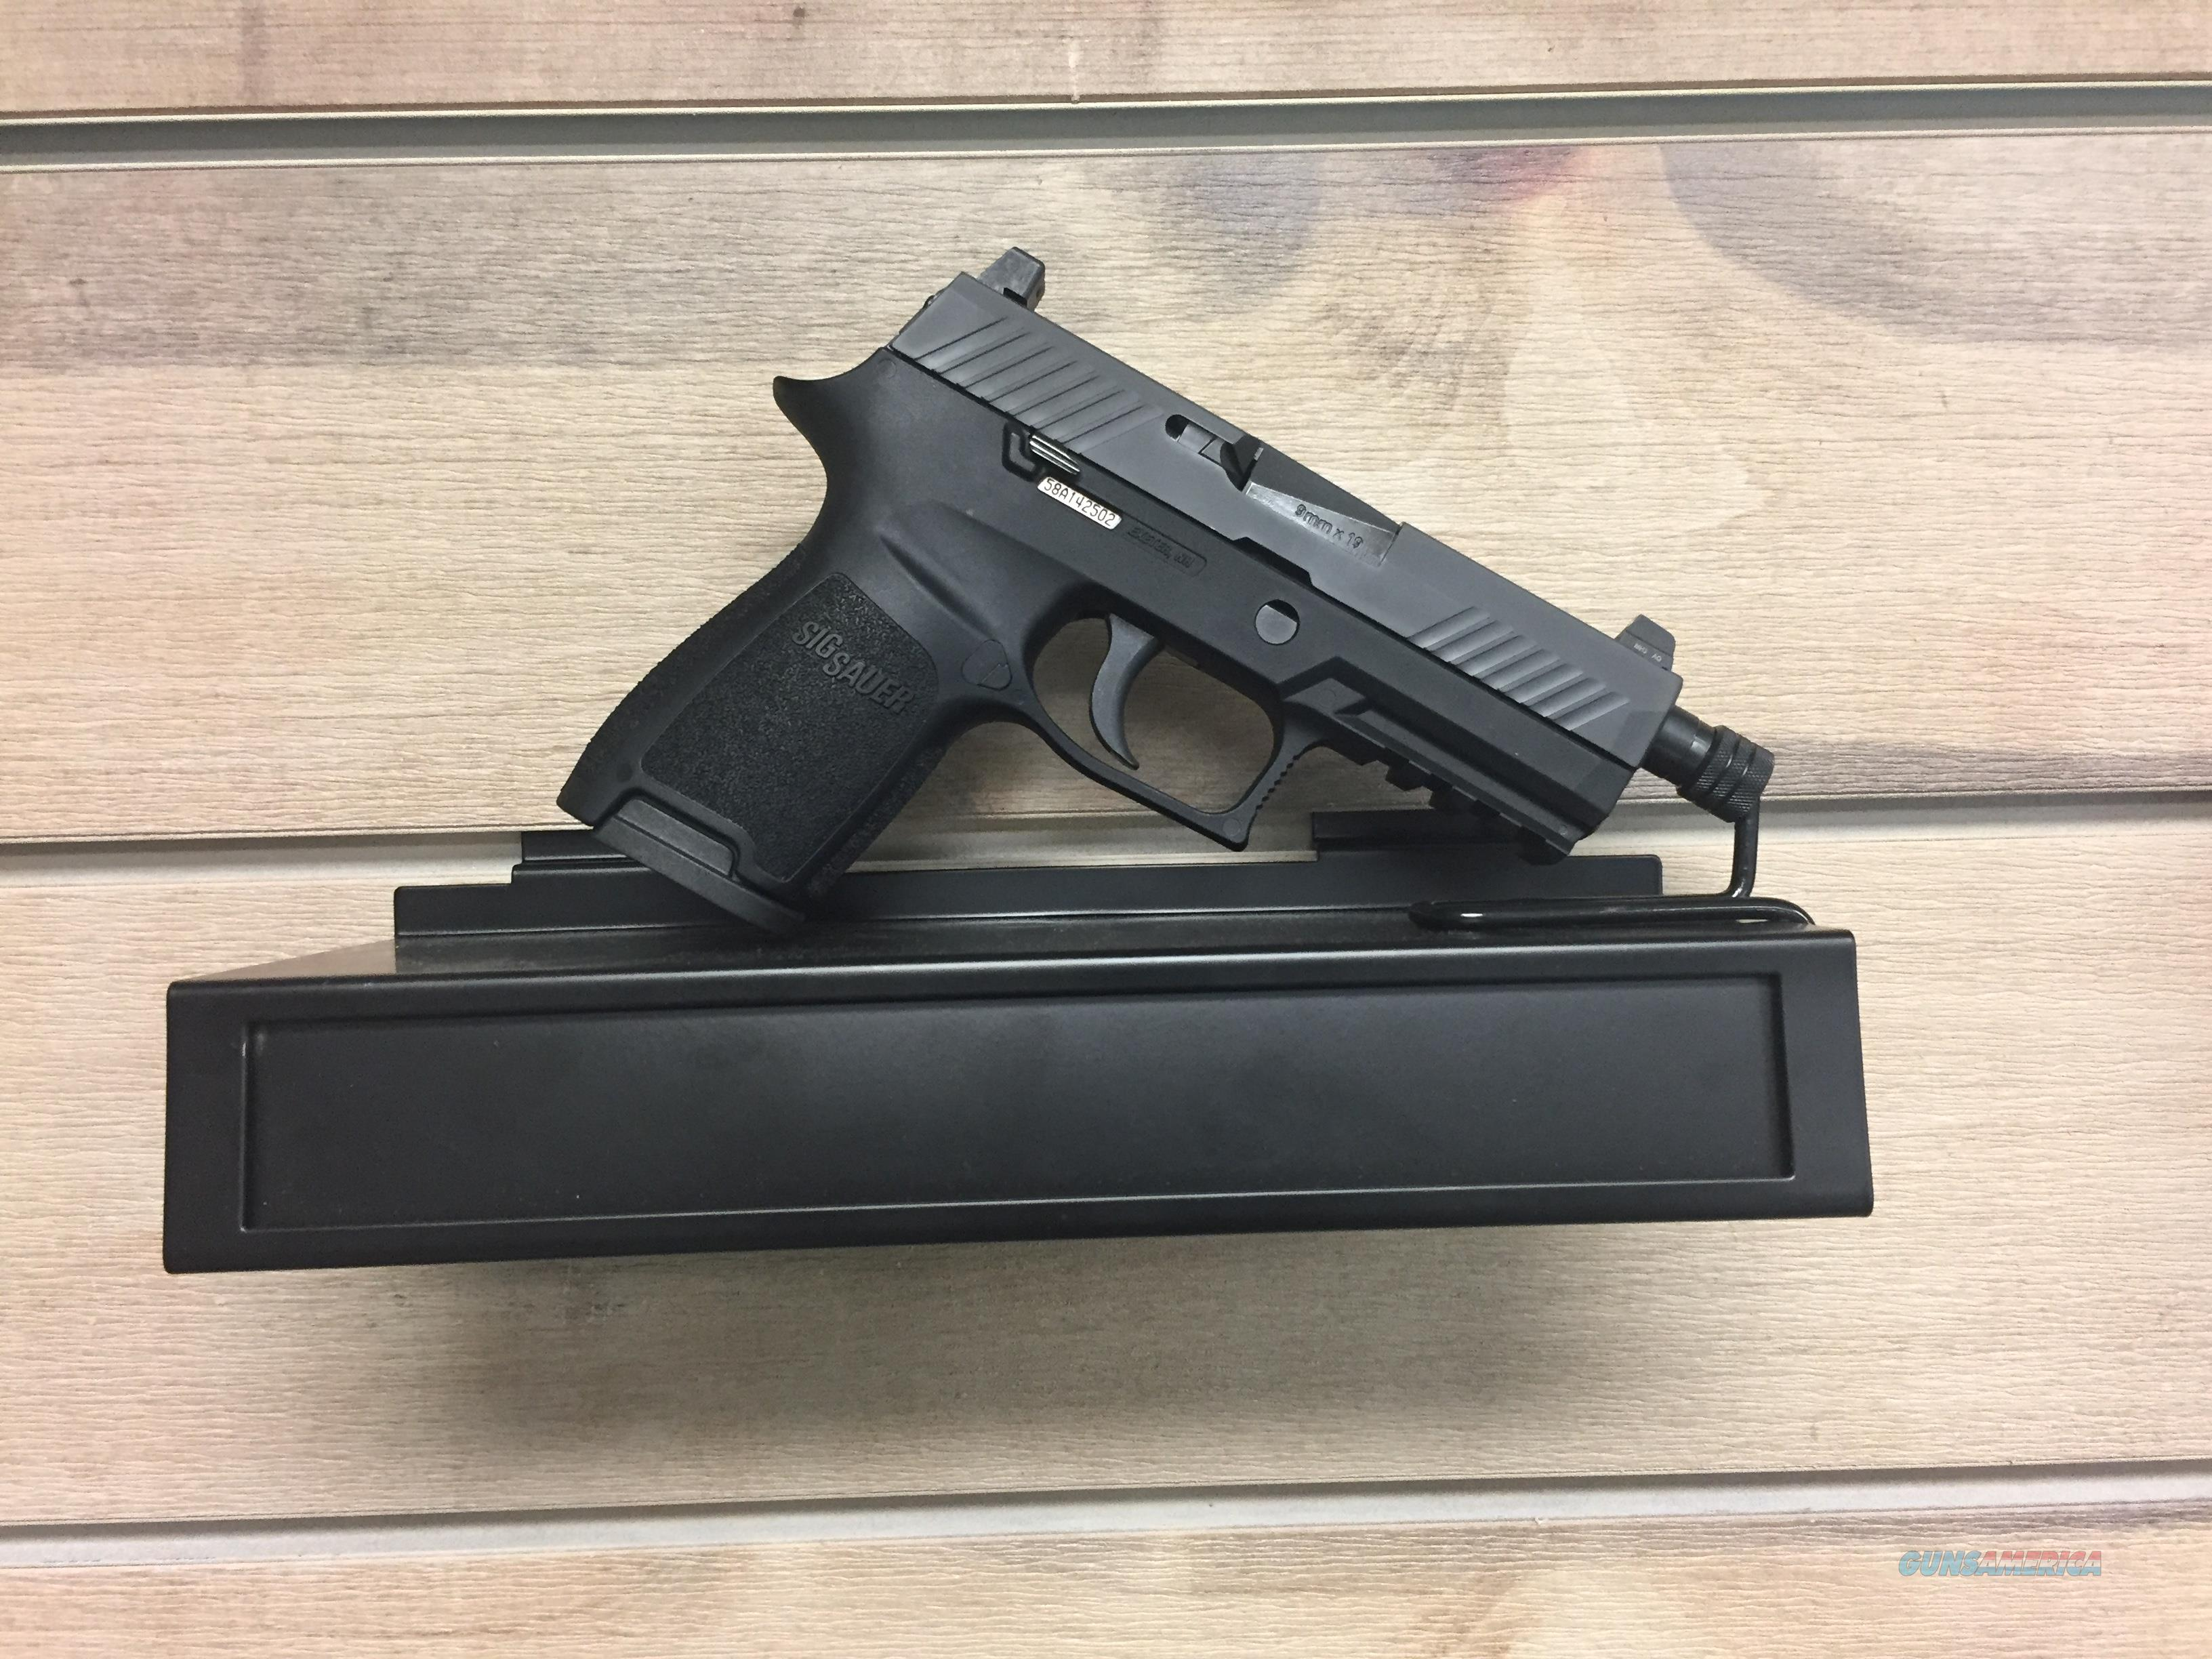 SIG SAUER P320 COMPACT WITH THREADED BARREL  Guns > Pistols > Sig - Sauer/Sigarms Pistols > P320